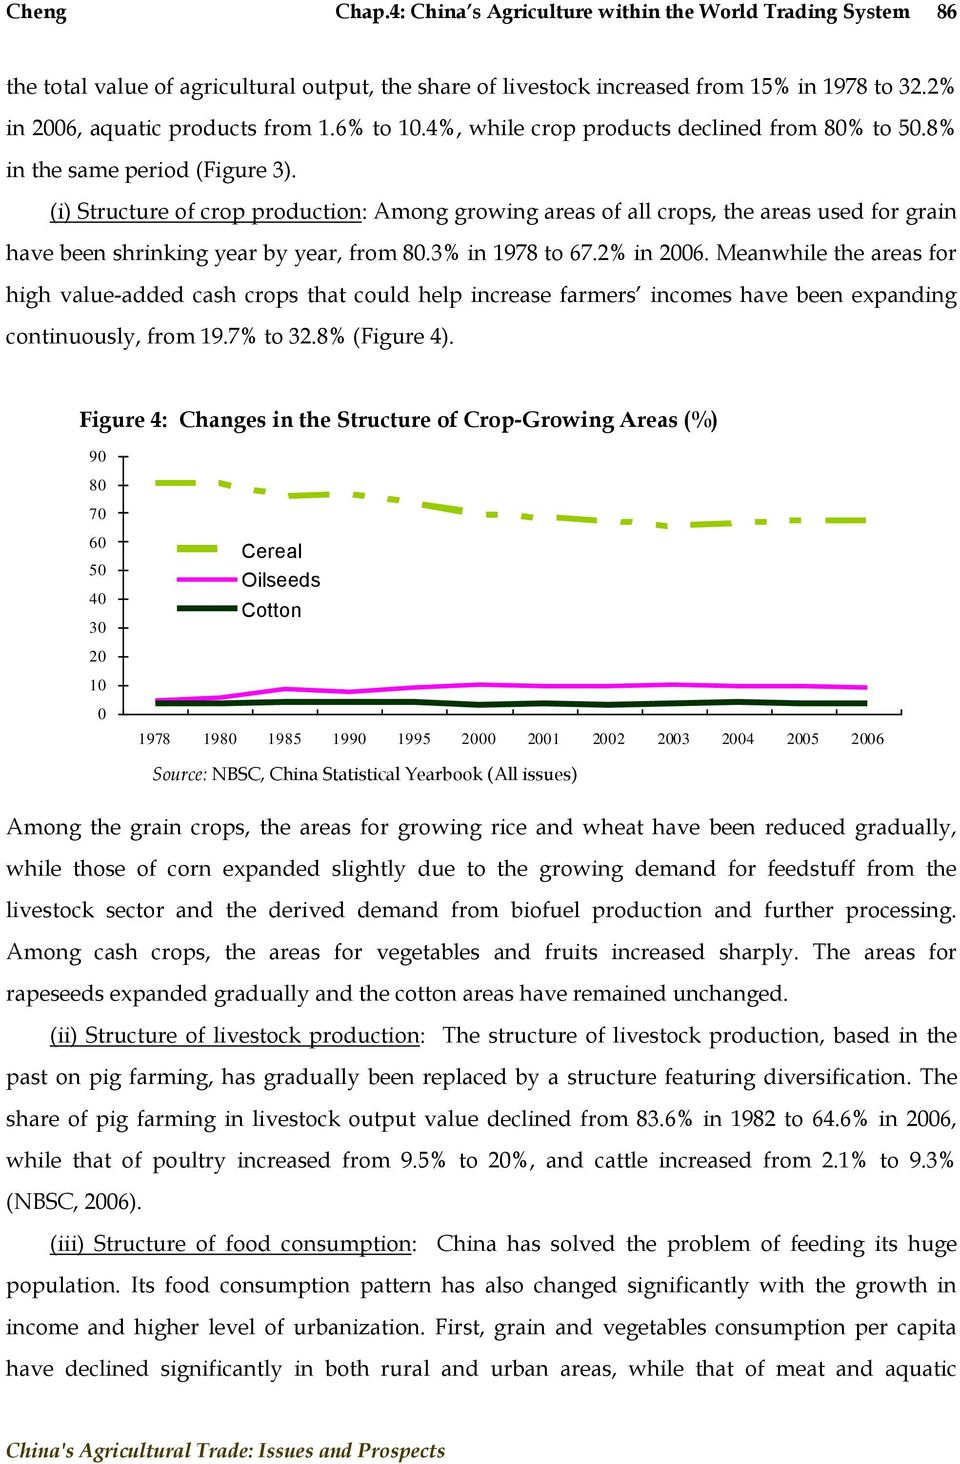 (i) Structure of crop production: Among growing areas of all crops, the areas used for grain have been shrinking year by year, from 80.3% in 1978 to 67.2% in 2006.